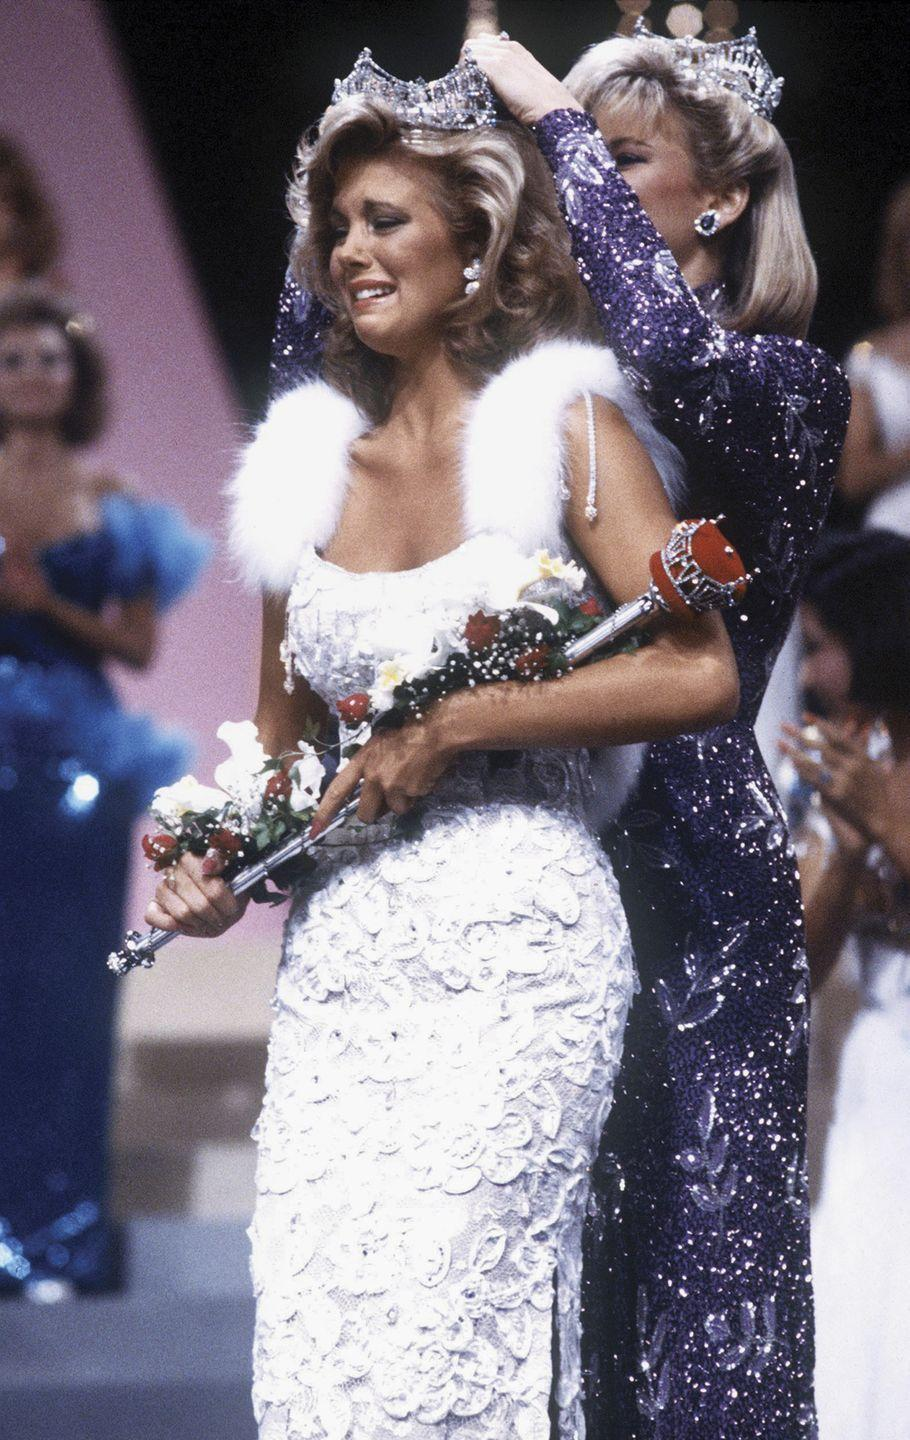 <p>As the '80s went on, the glamour only intensified. Susan Akin from Mississippi did not hold back in this white, embroidered look with fur straps.</p>